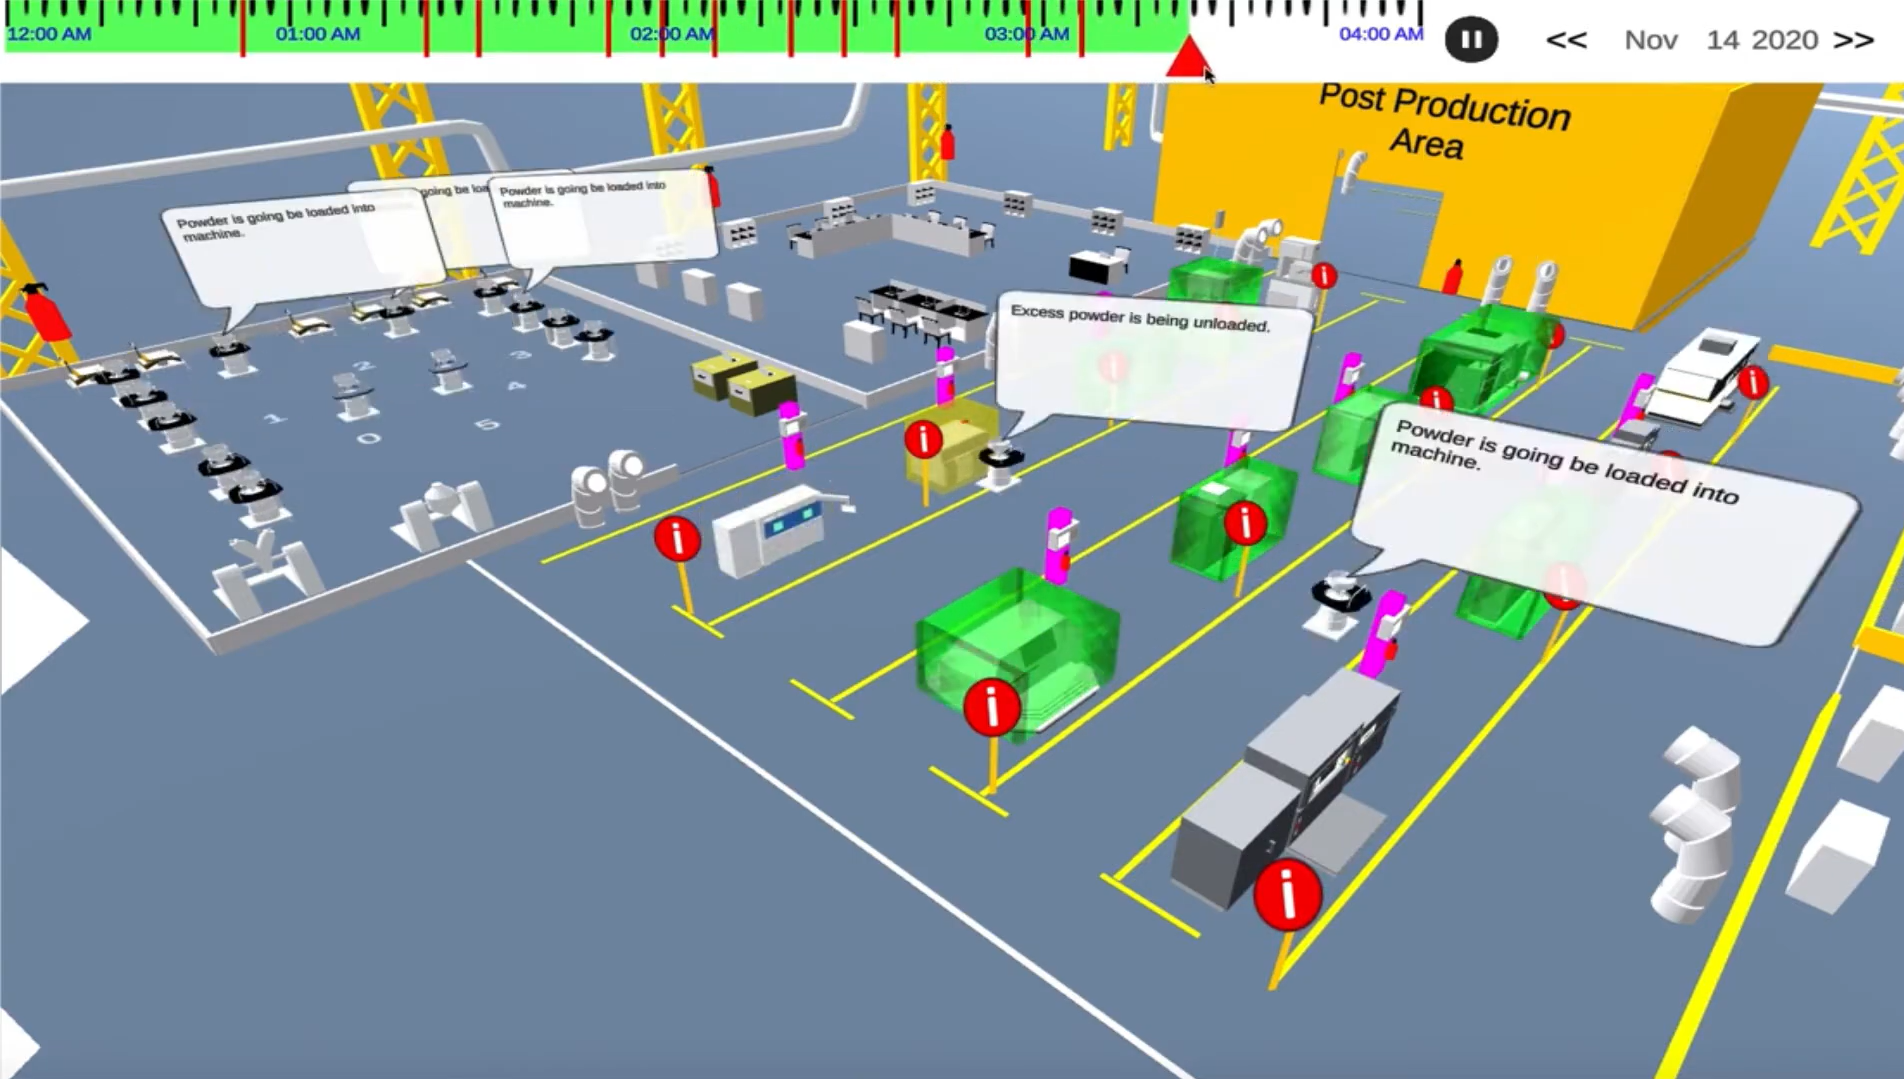 Synoptik's virtual 3D space can be used to visualize a manufacturing facility. Image via Gravity Pull Systems.